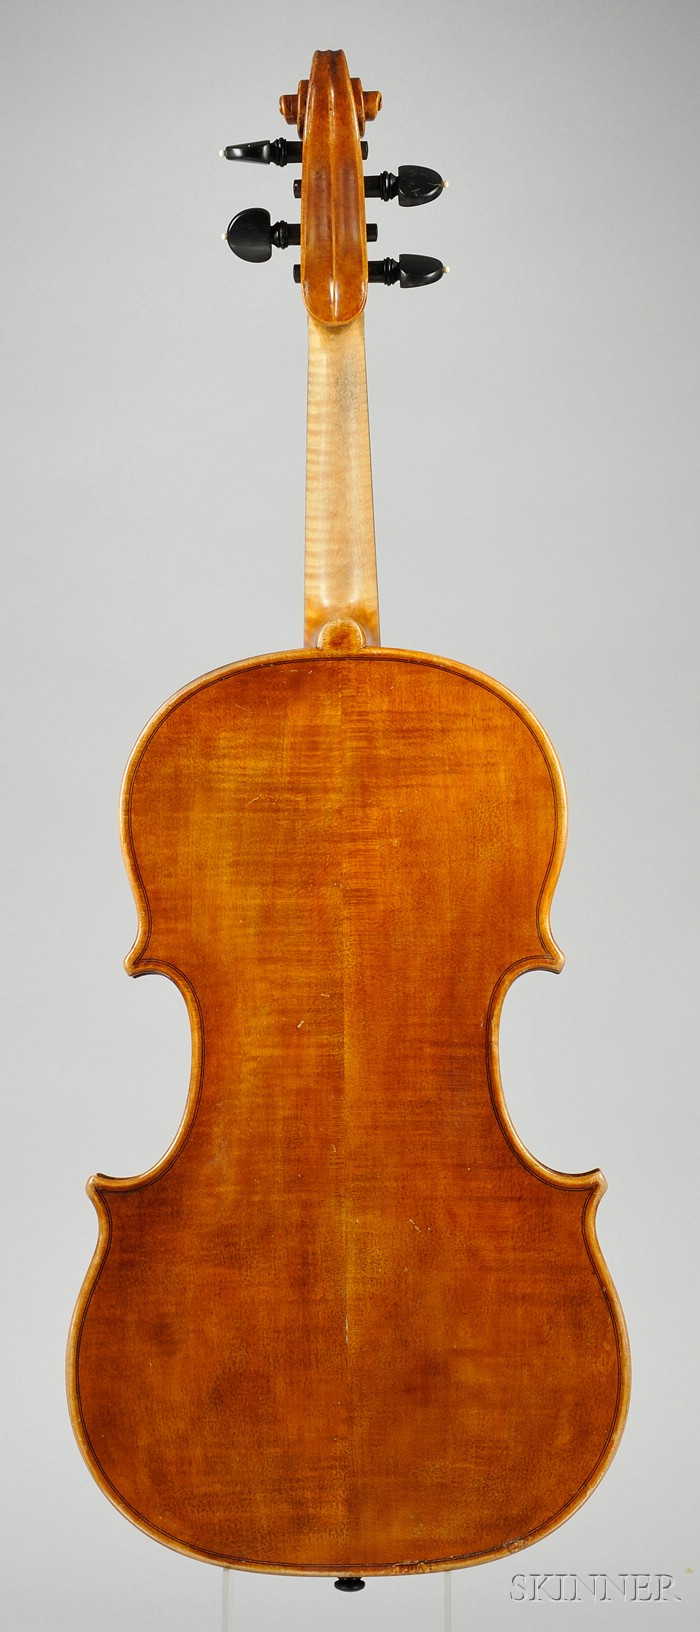 Modern Italian Viola, Probably Sderci Workshop